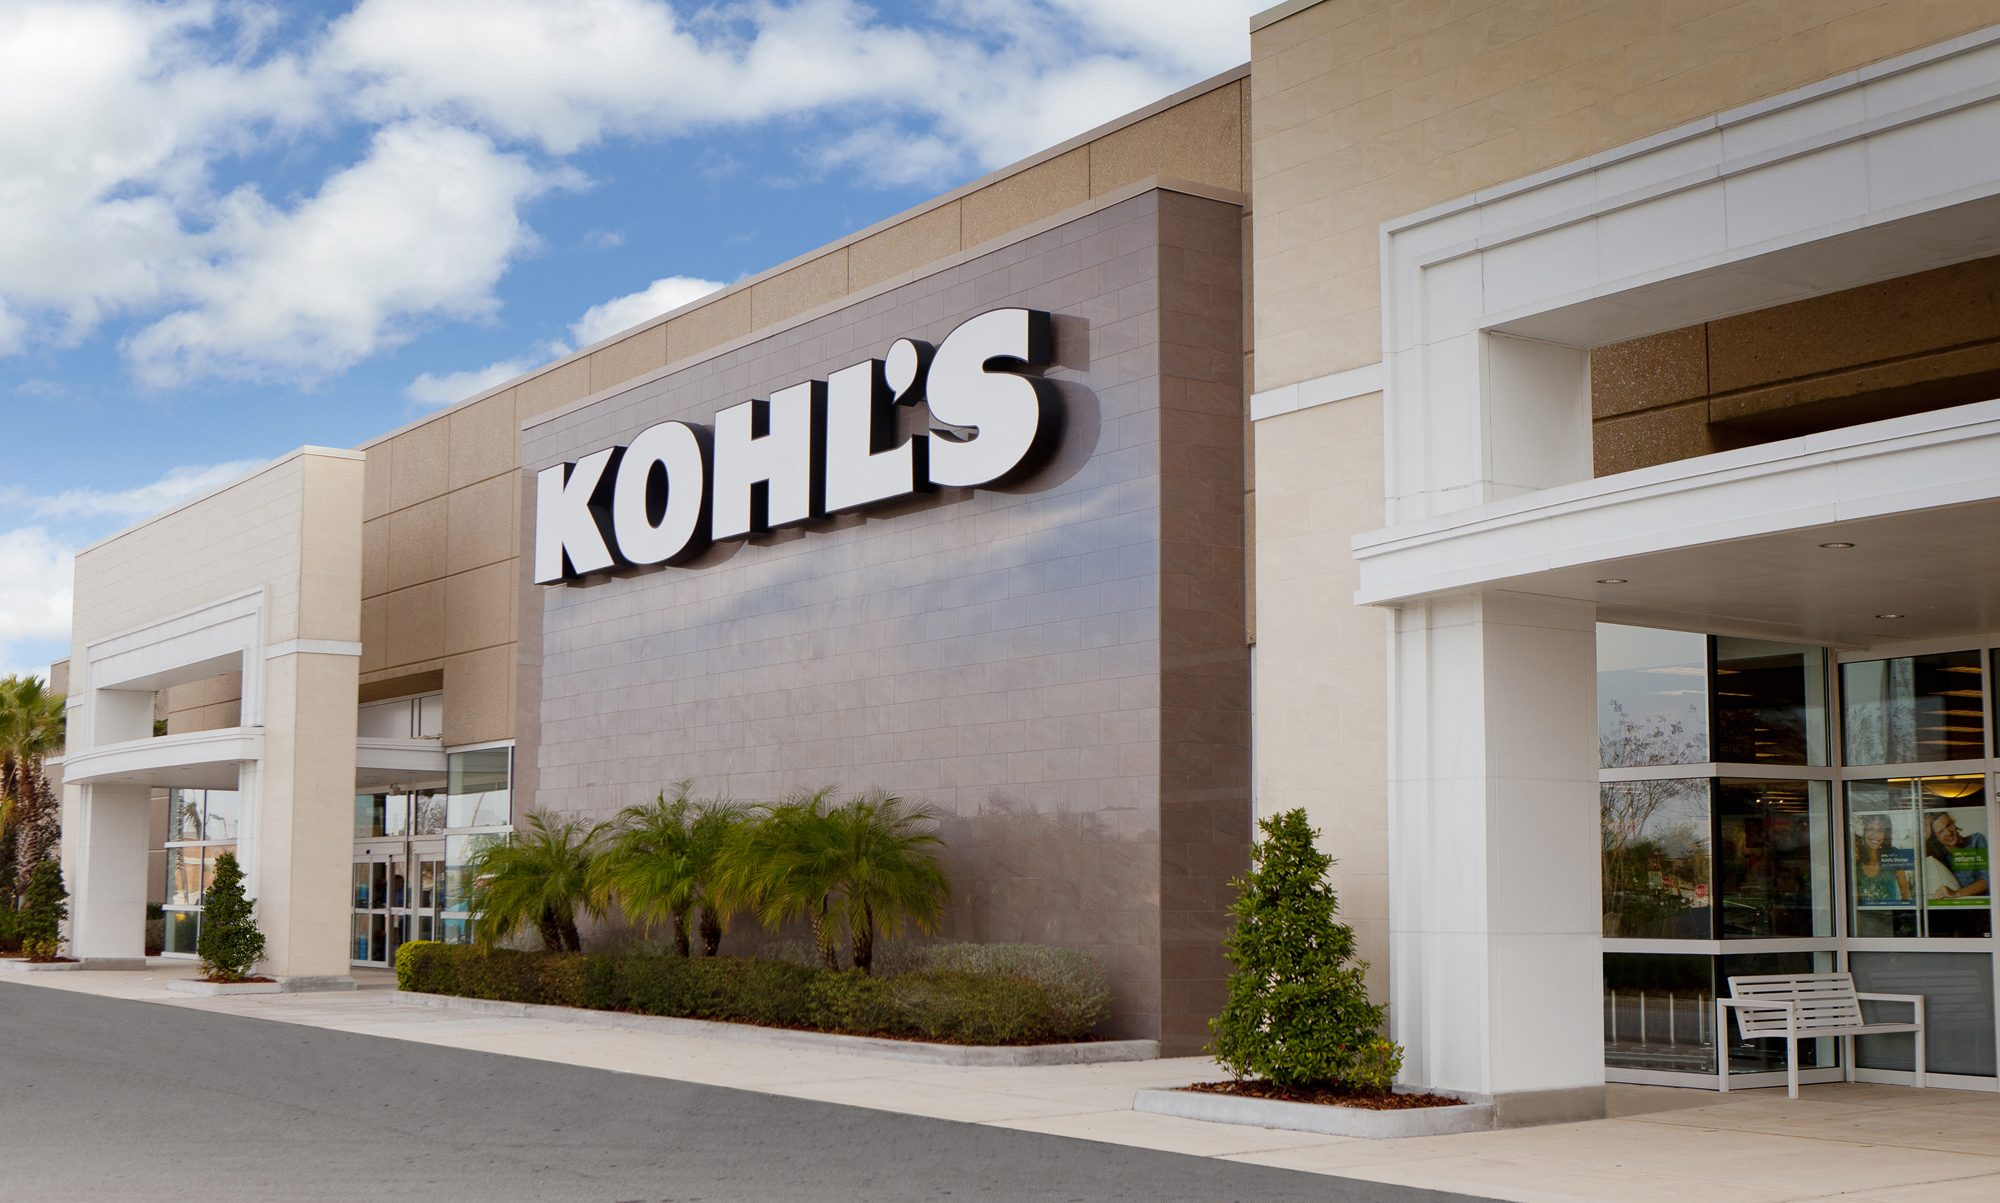 Is Kohl's Selling BLM Merchandise? - snopes